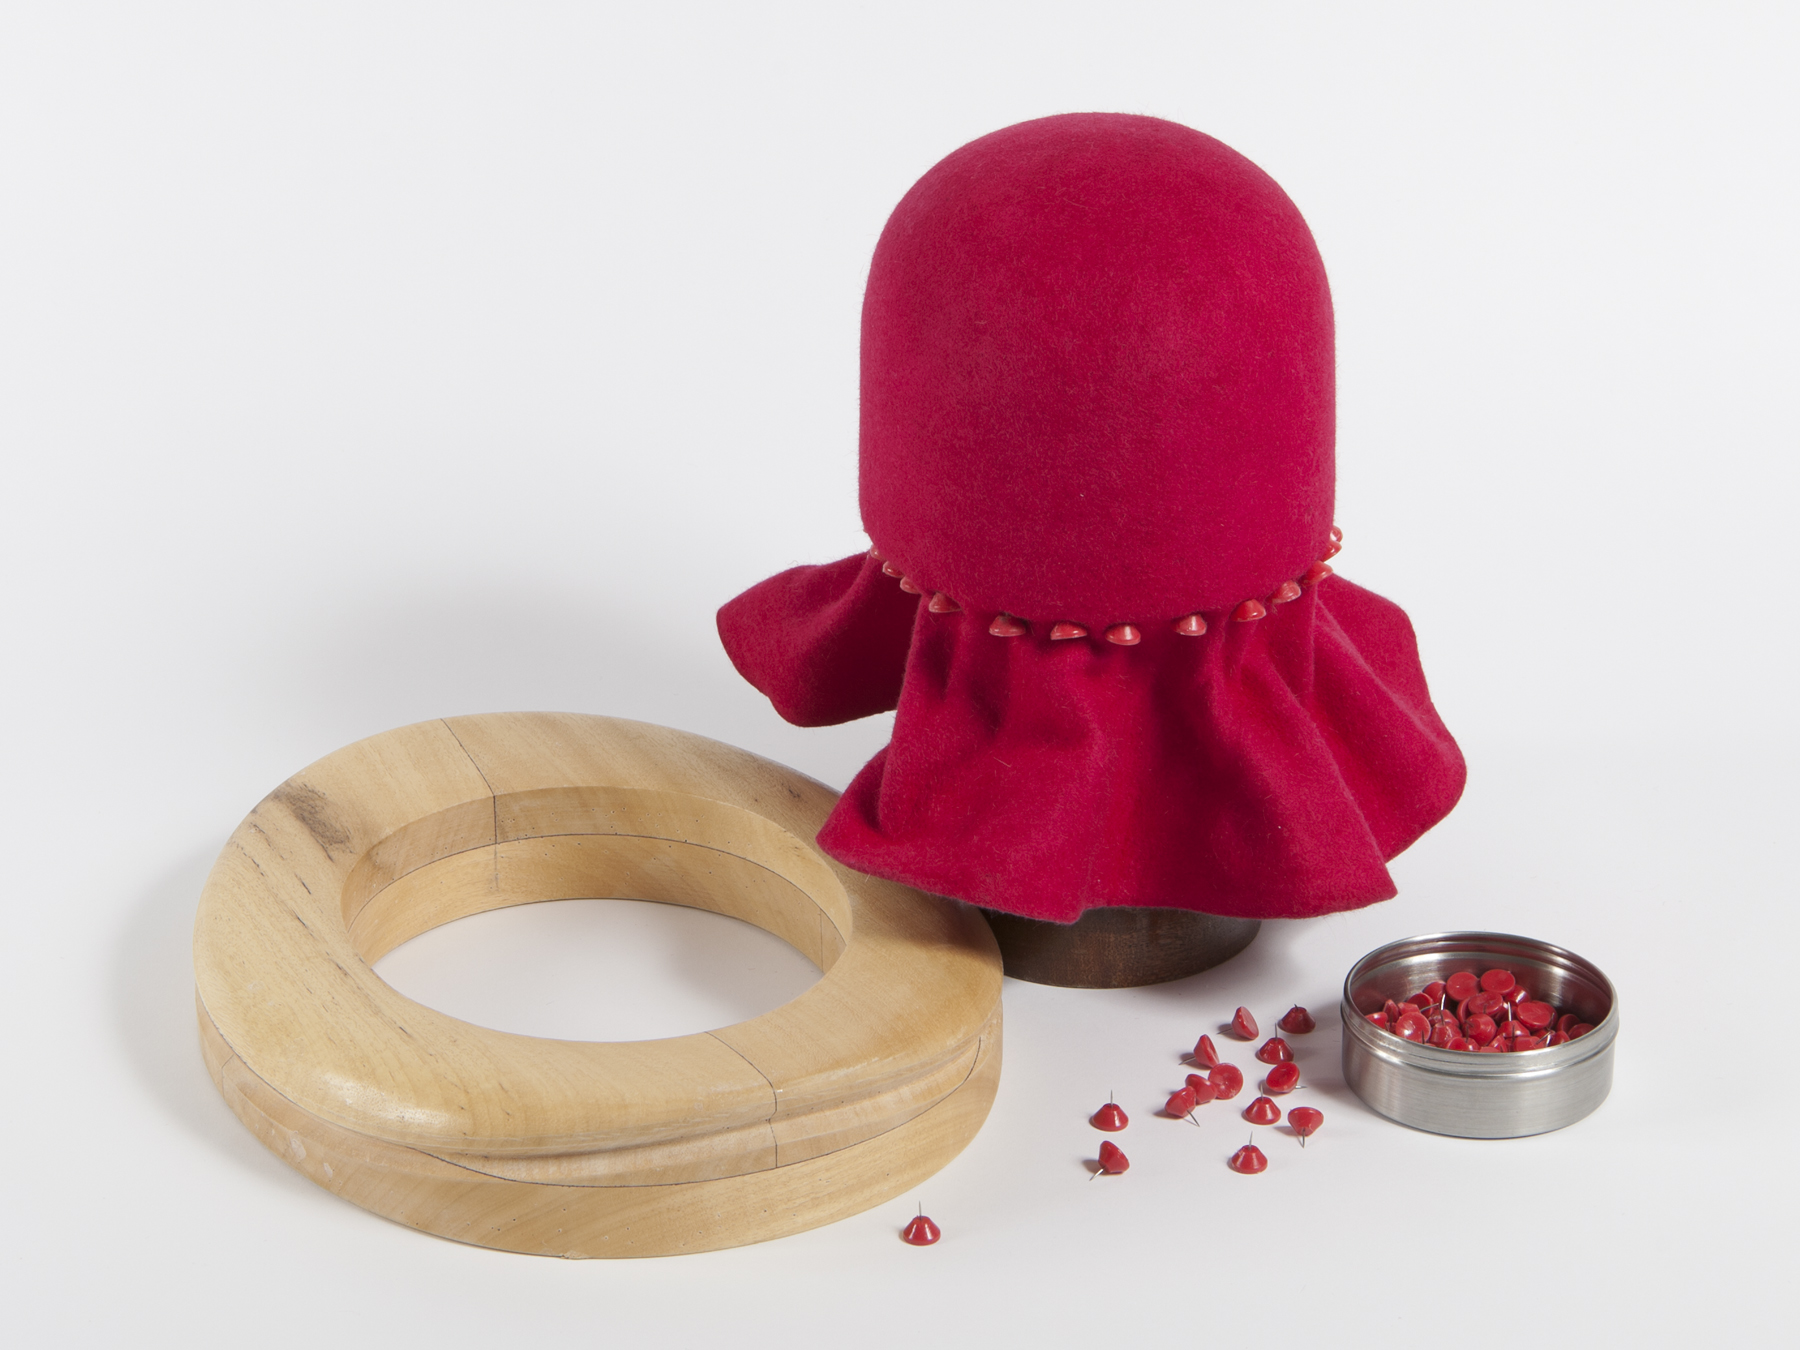 Beginner's Millinery - Blocked Felt or Straw Hats: 2-day course